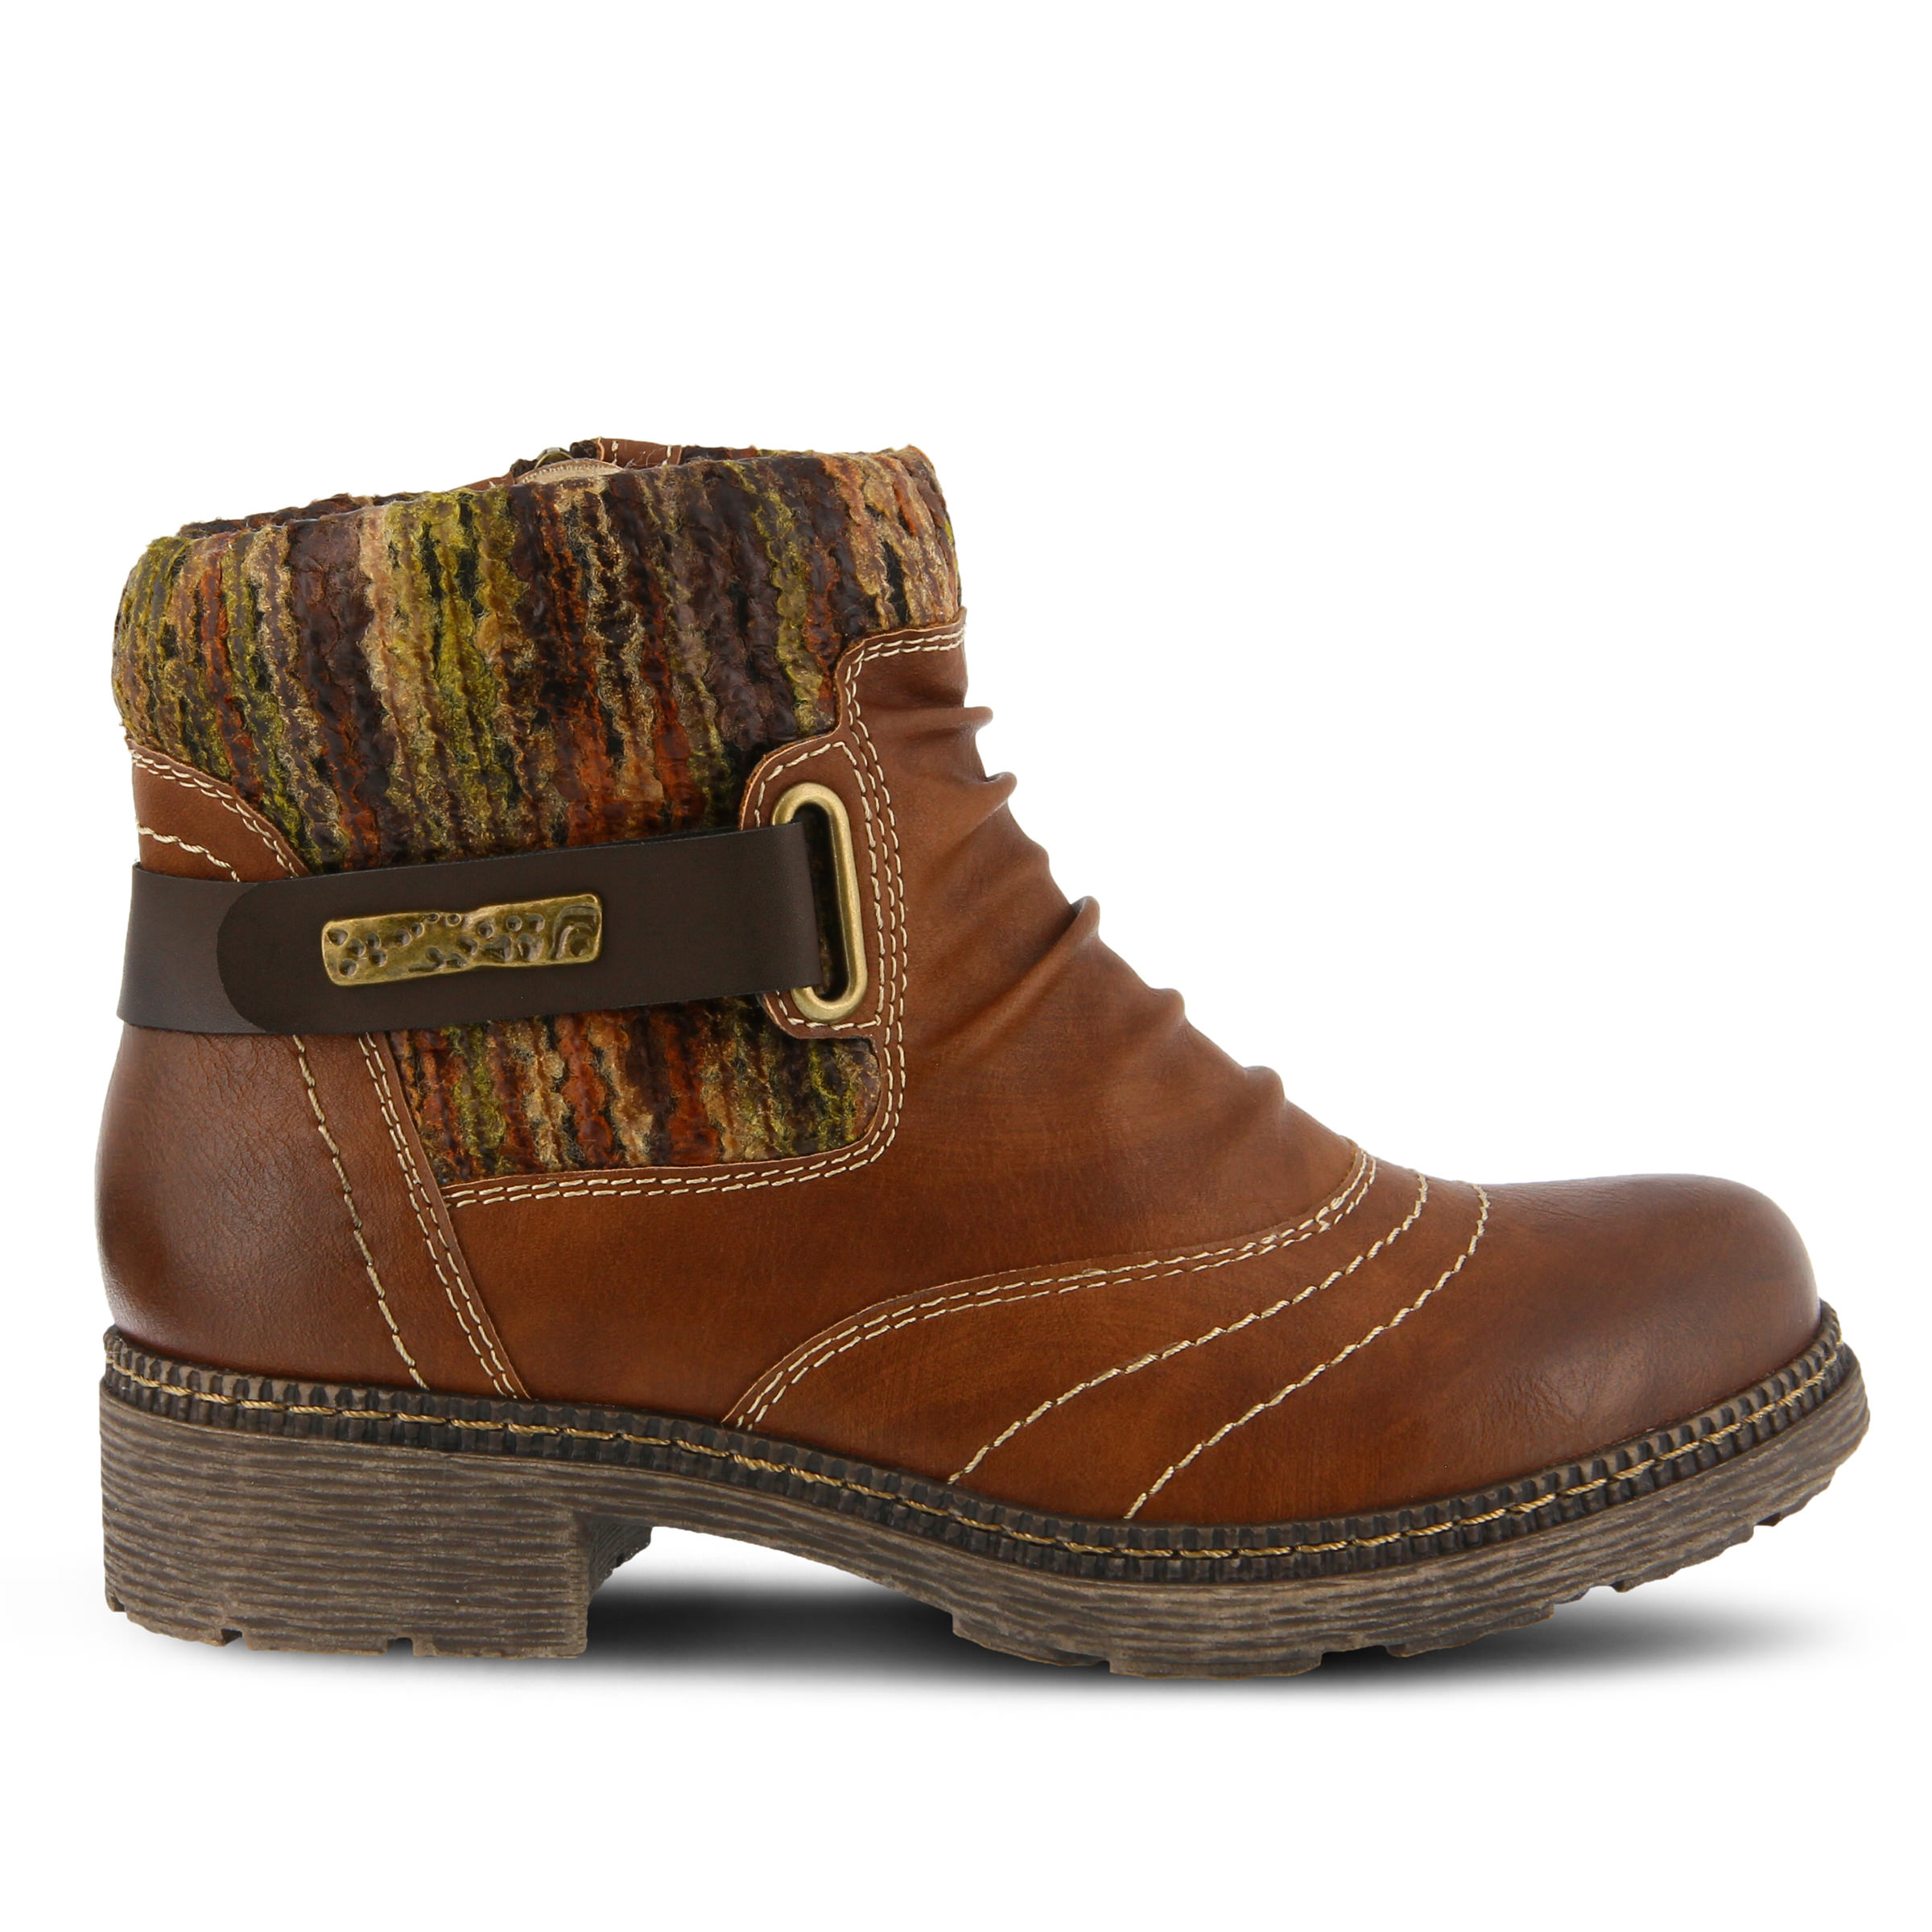 SPRING STEP Citrine Women's Boots (Brown Faux Leather)